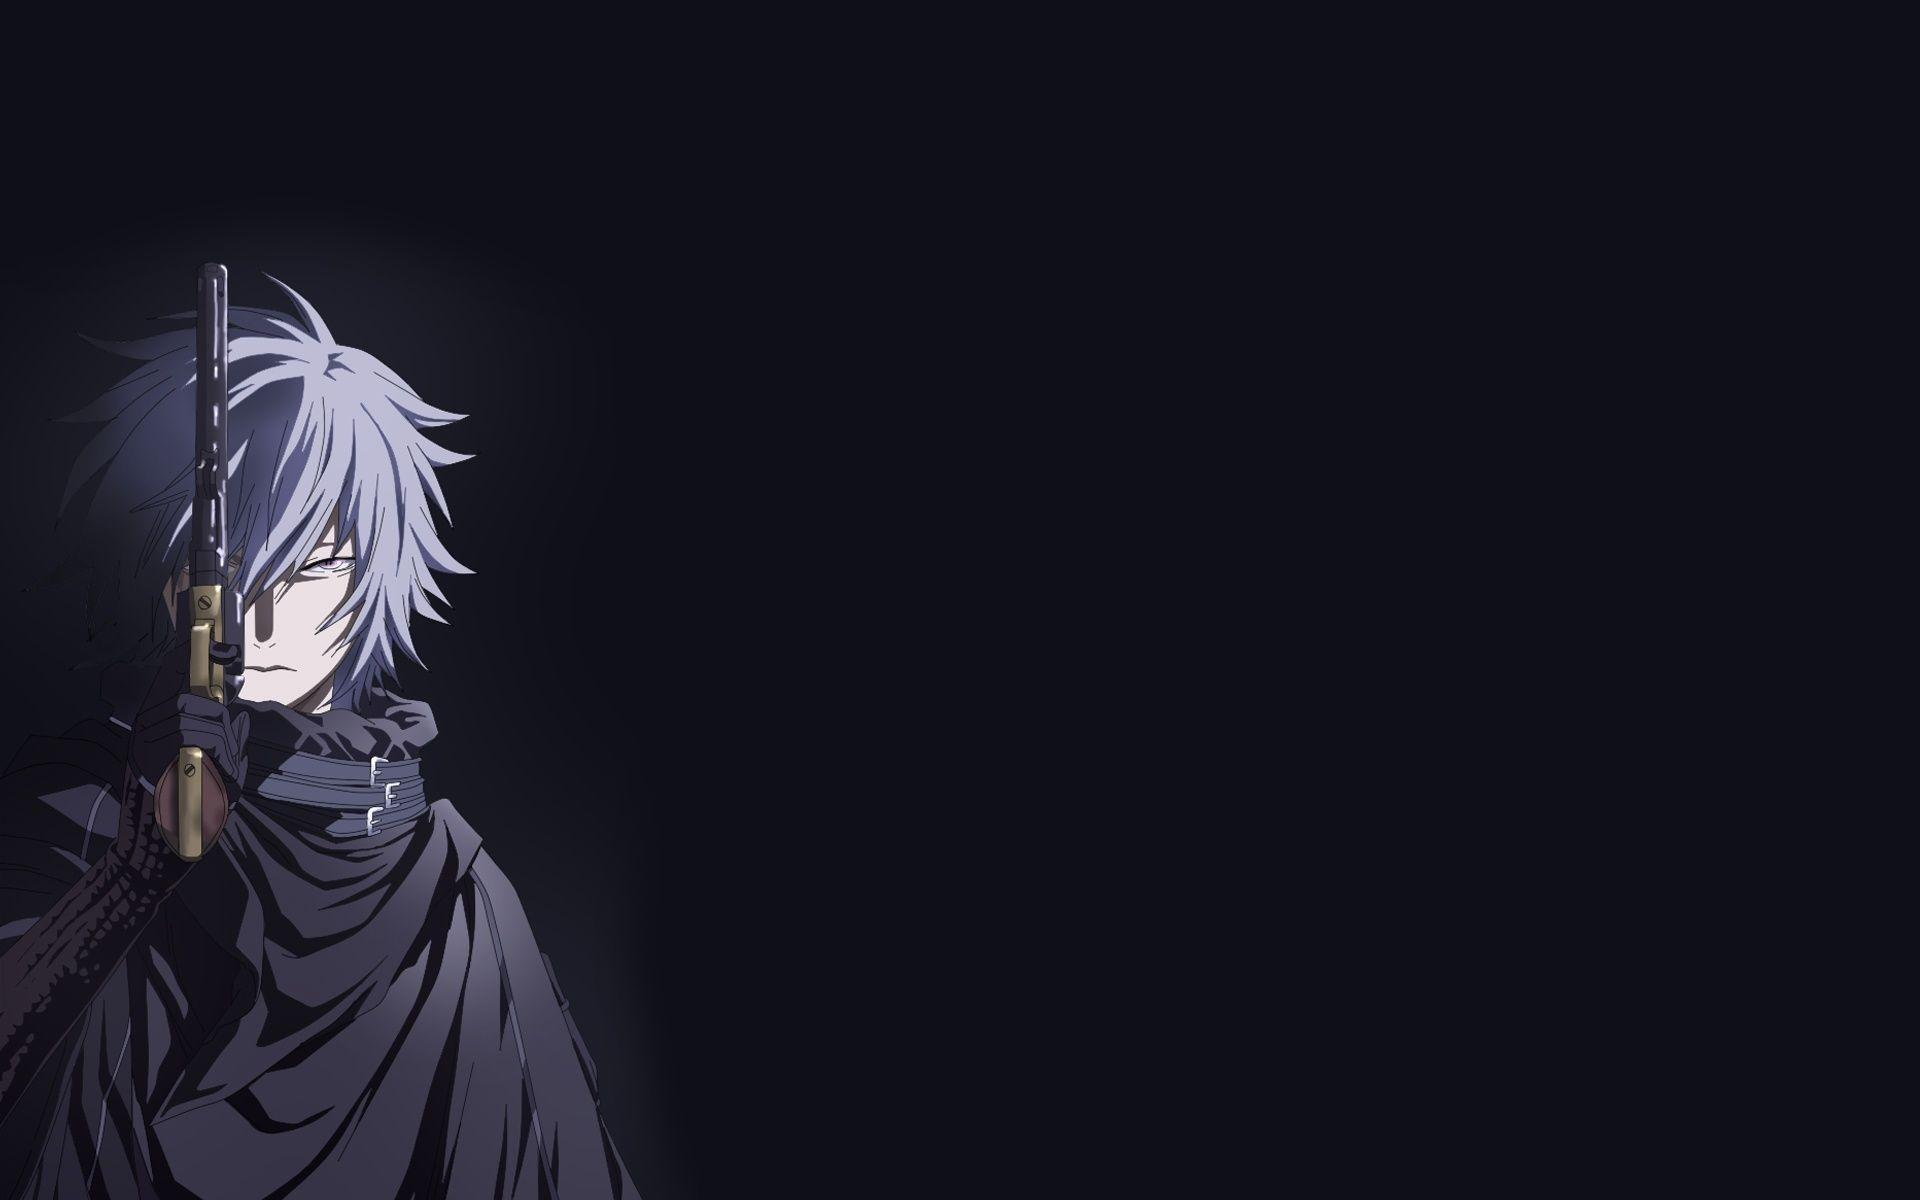 wallpapers hd anime dark - wallpaper cave